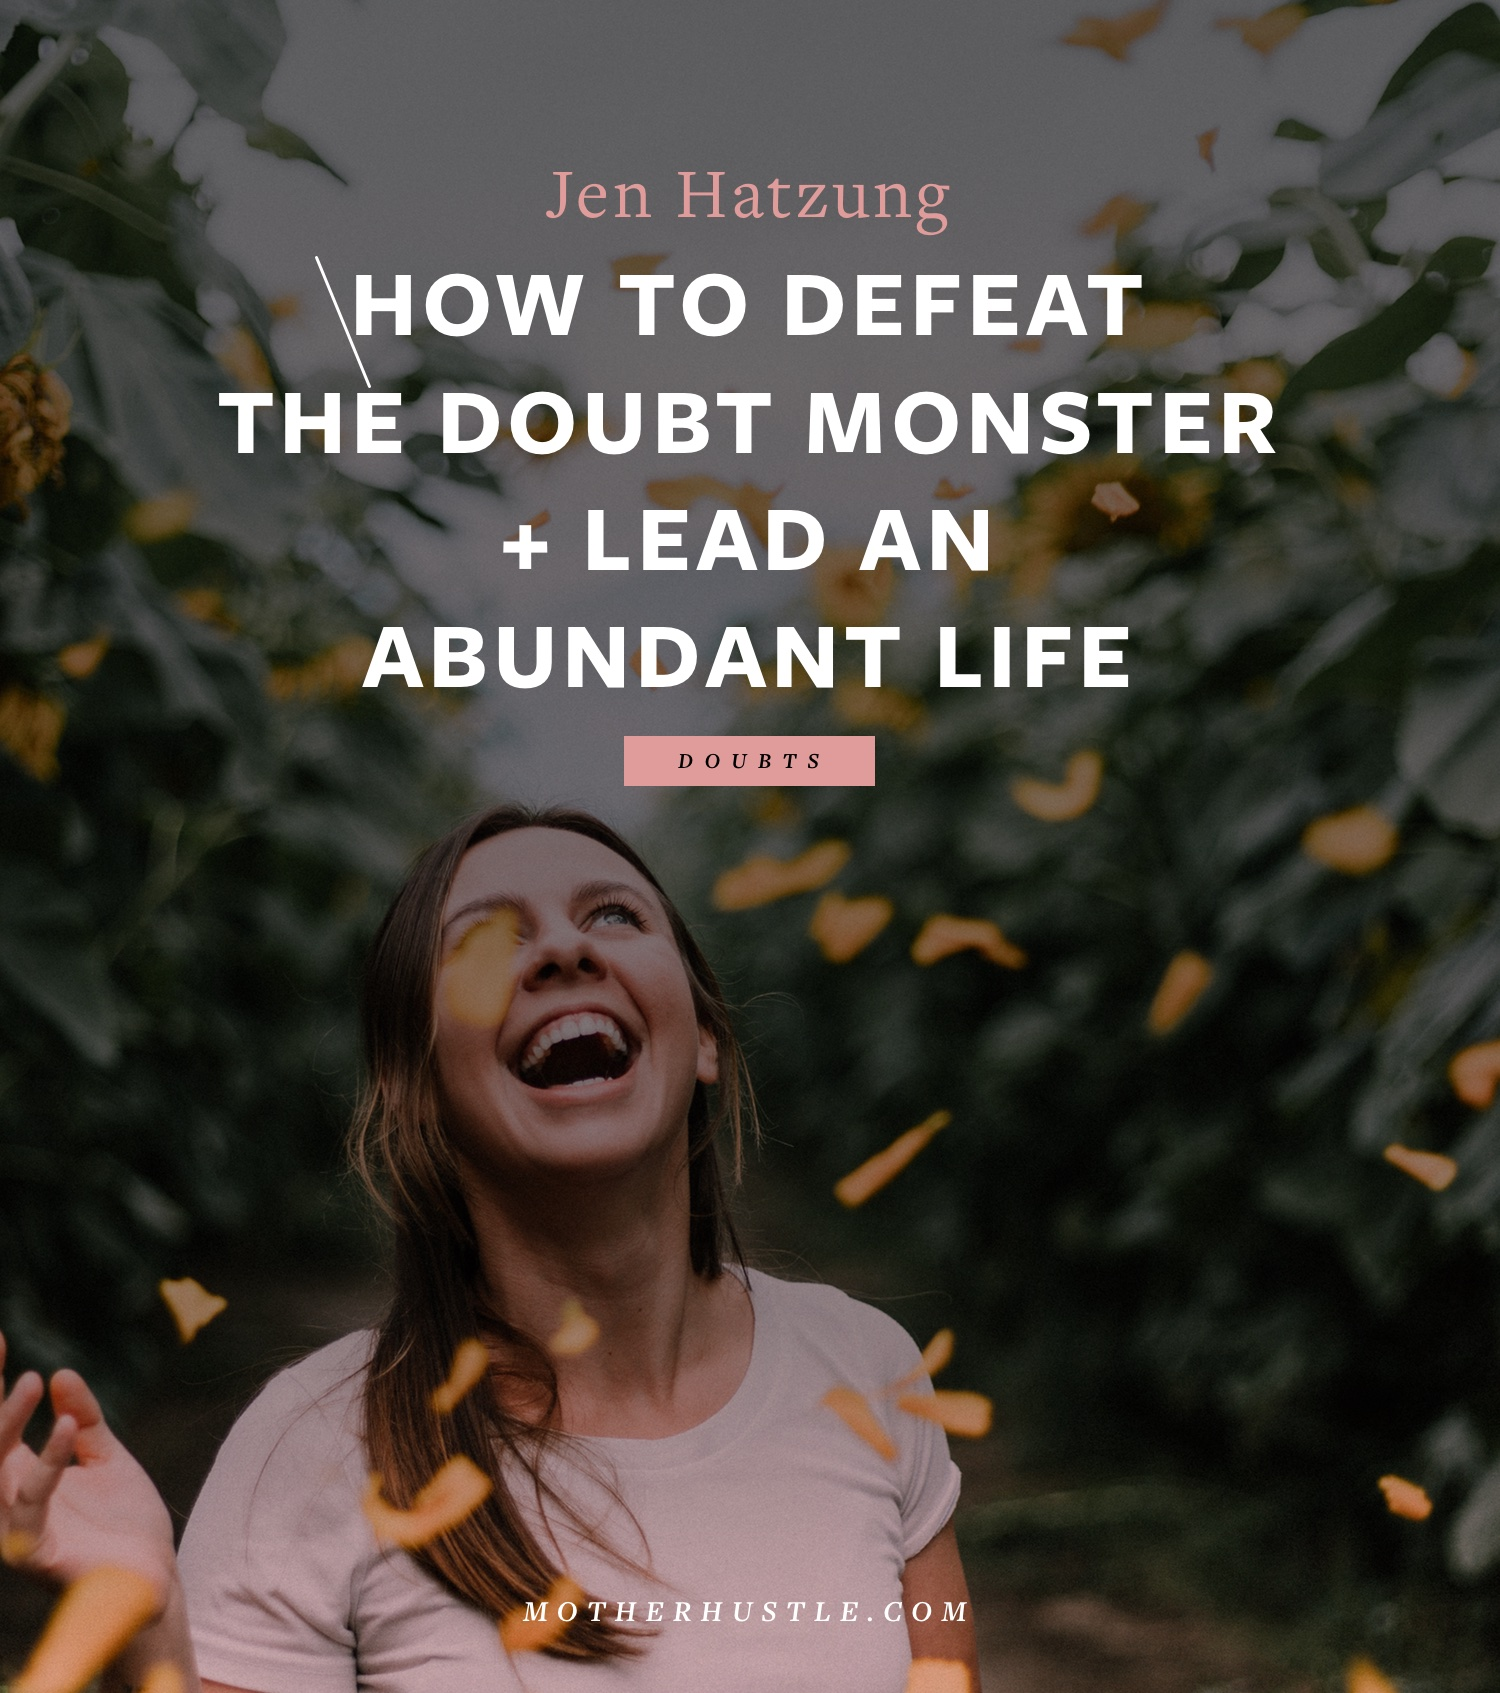 How to Defeat the Doubt Monster + Live an Abundant Life - by Jen Hatzung for MotherHustle